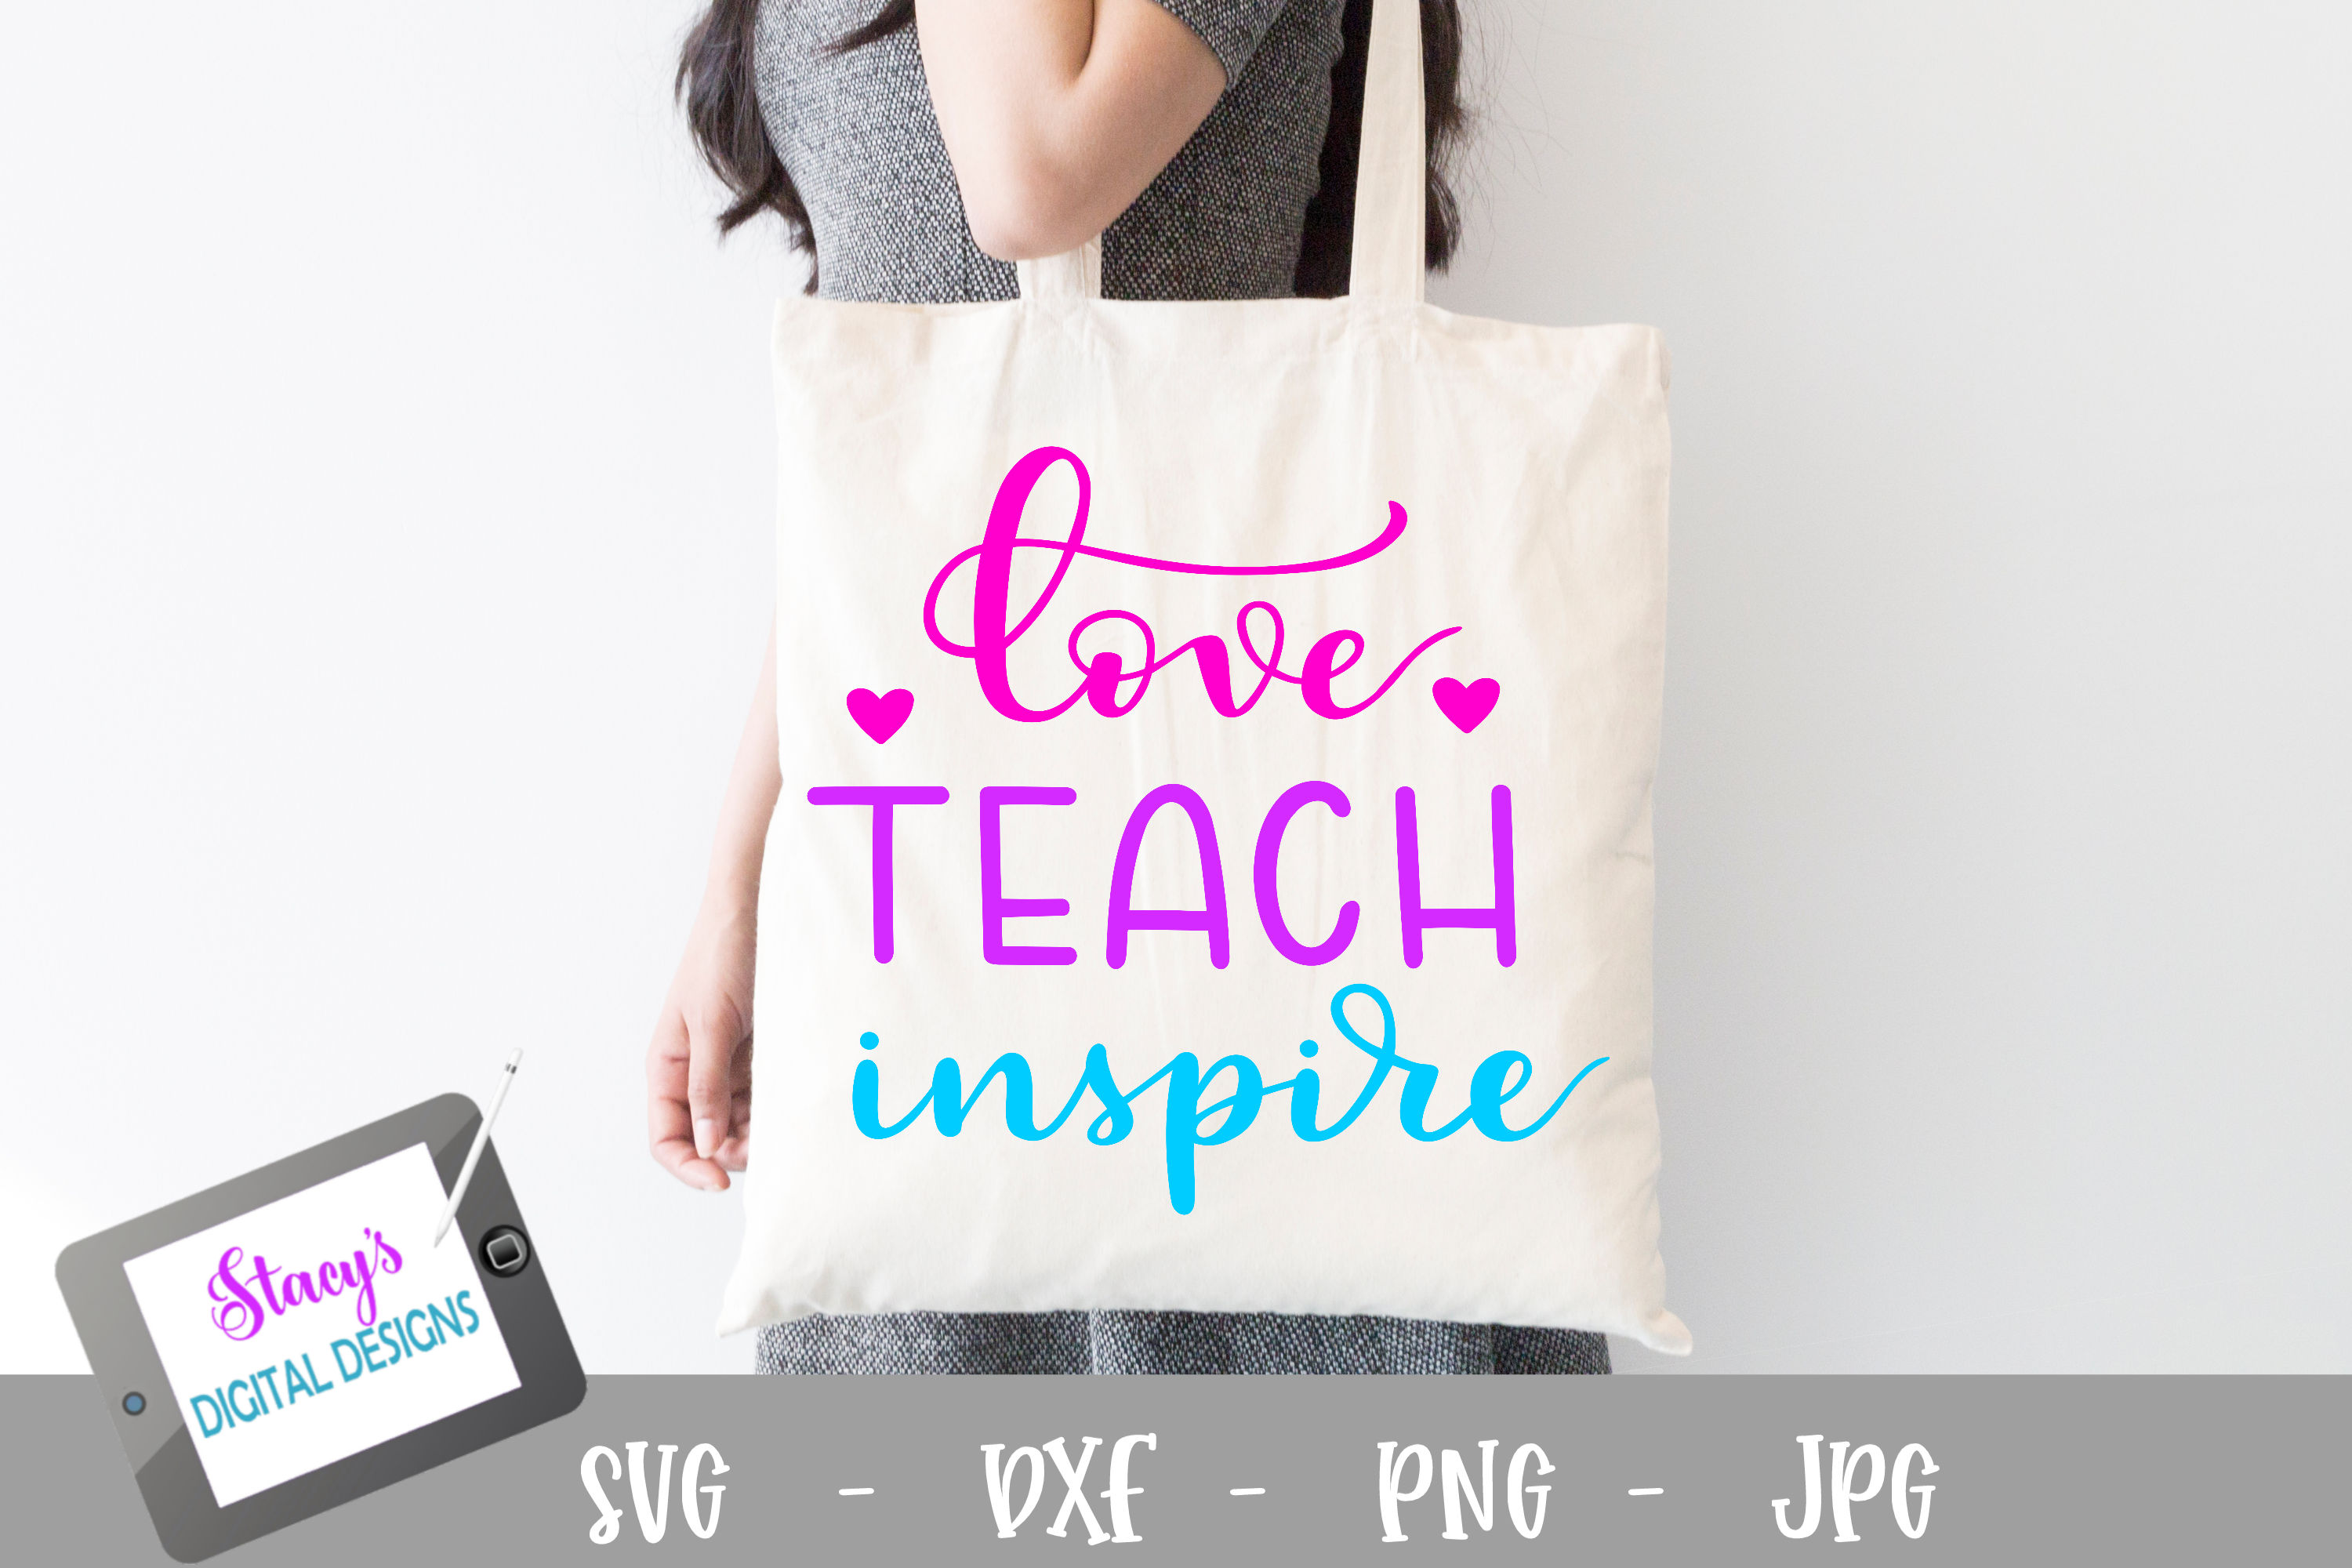 Download Free Love Teach Inspire Teacher Graphic By Stacysdigitaldesigns for Cricut Explore, Silhouette and other cutting machines.